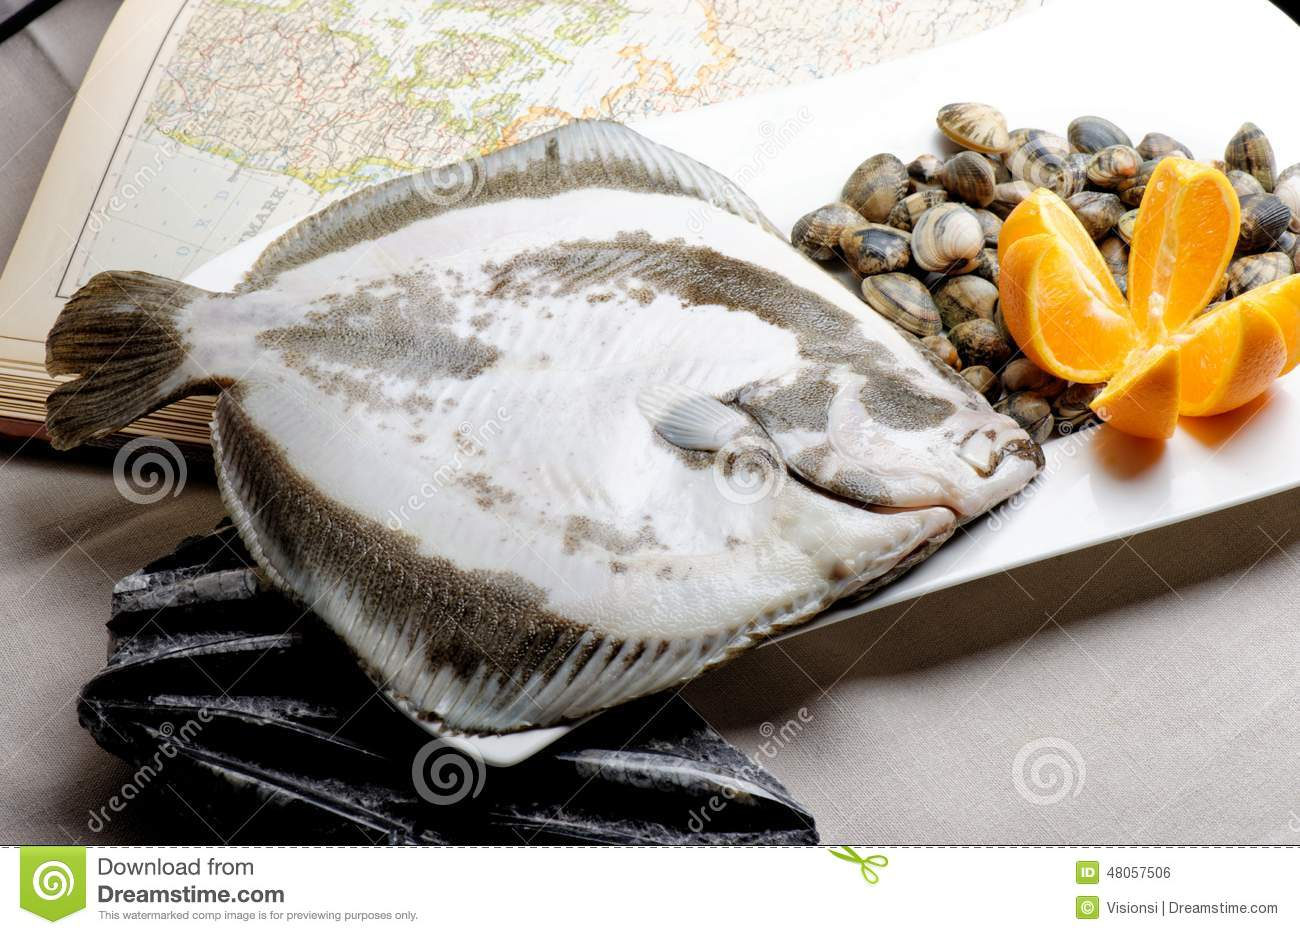 Turbot fish and clams stock photo image 48057506 for Turbot fish price